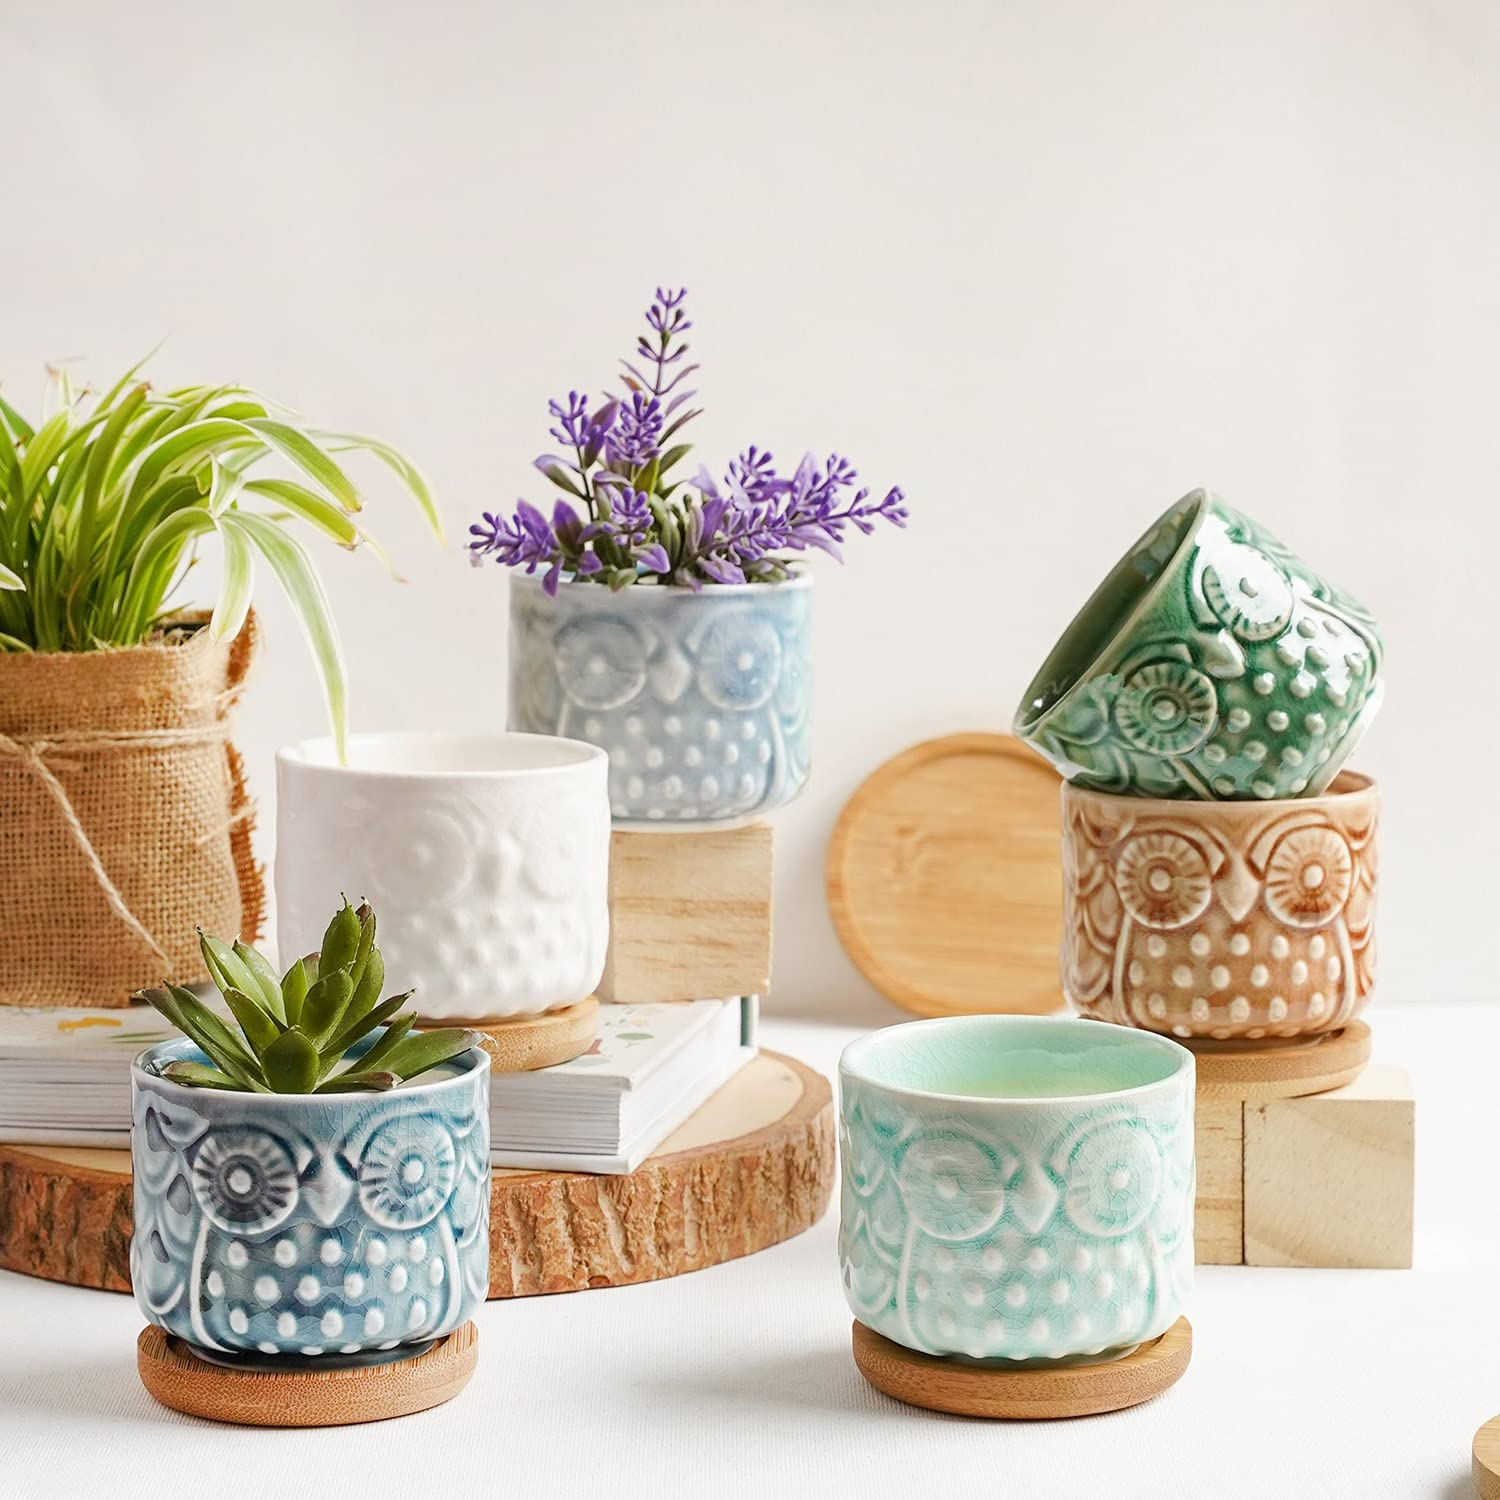 Succulent Pots, ZOUTOG 2.6 inches Ceramic Pots for Plants, Suitable for Indoor Use, with Drain Holes and Bamboo Trays (Plants NOT Included)